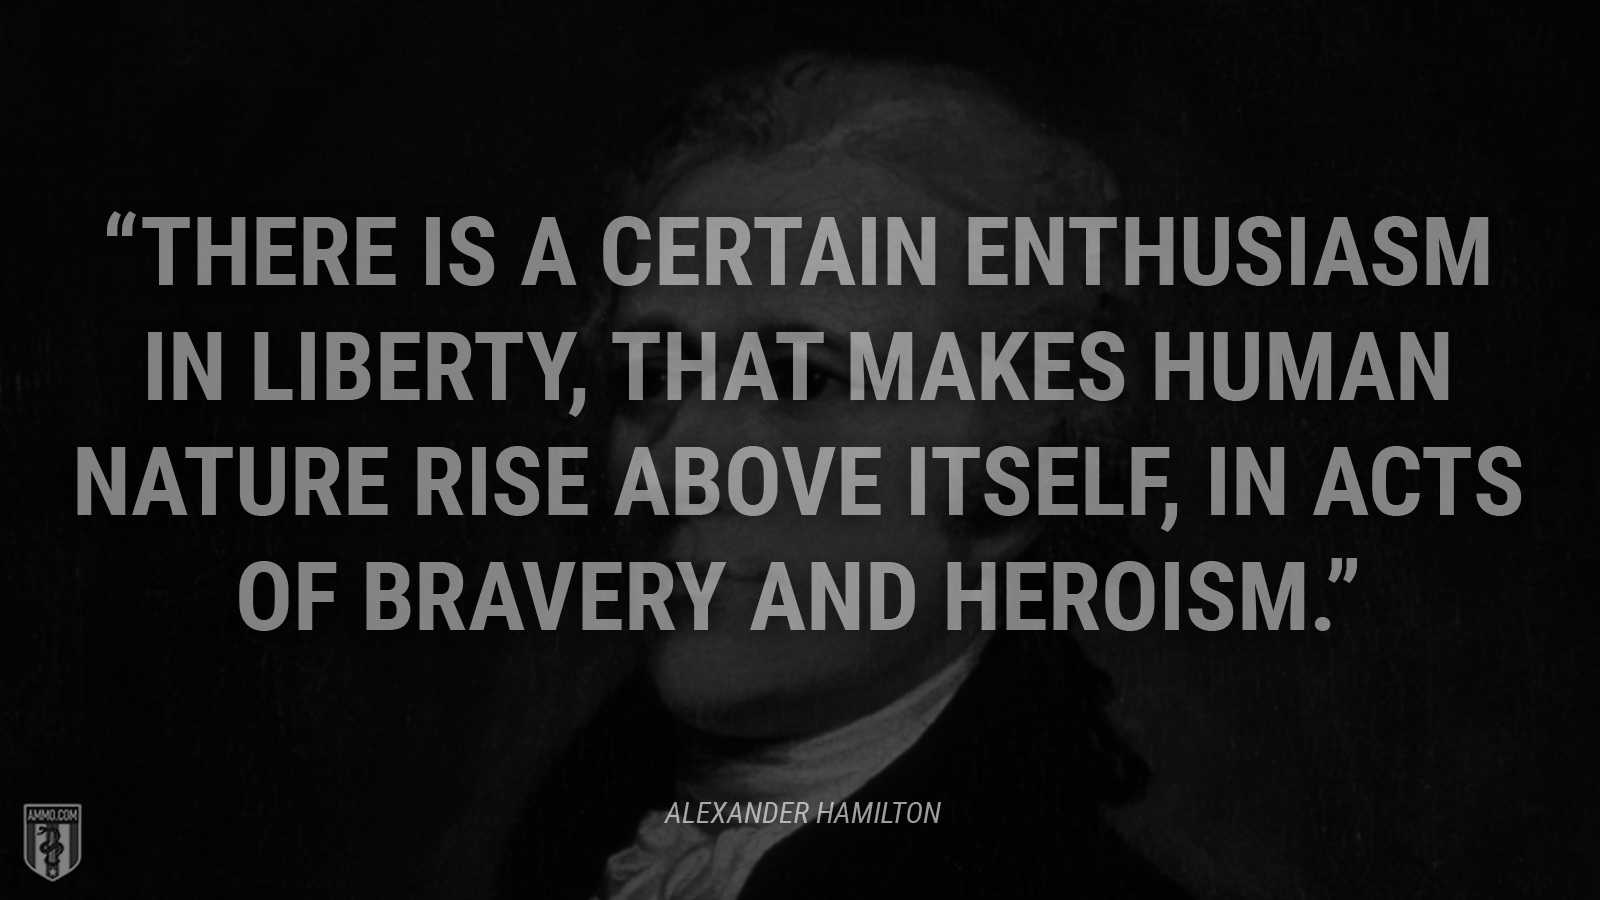 """There is a certain enthusiasm in liberty, that makes human nature rise above itself, in acts of bravery and heroism."" - Alexander Hamilton"